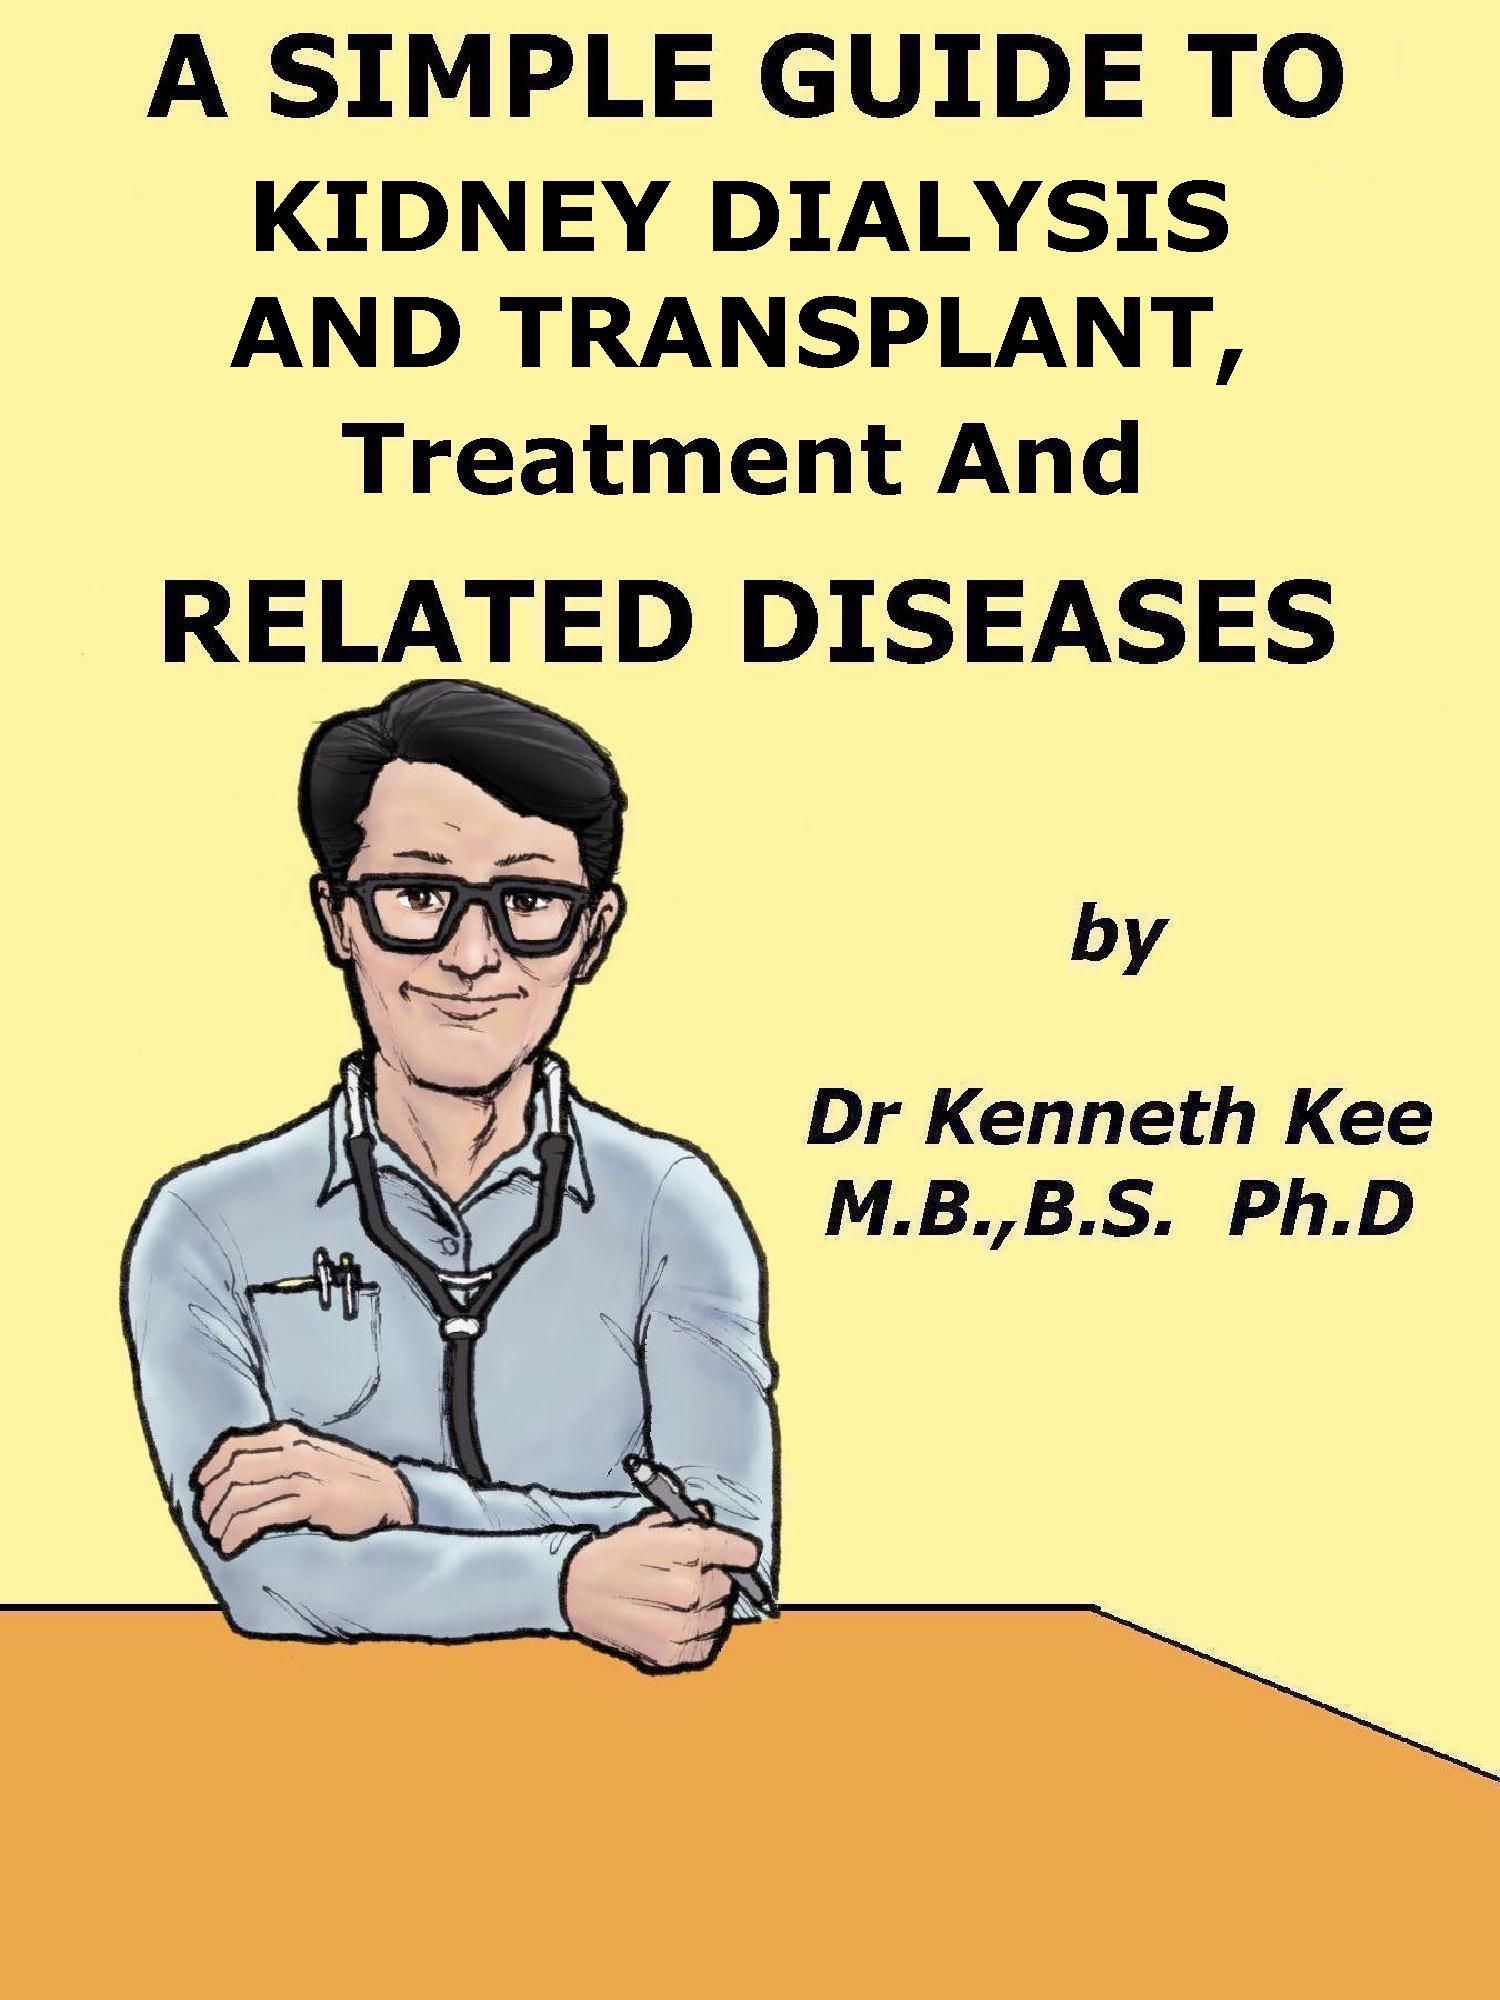 A Simple Guide to Kidney Dialysis and Transplant, Treatment and Related Diseases  http://amazon.com/dp/B00KIF40QW